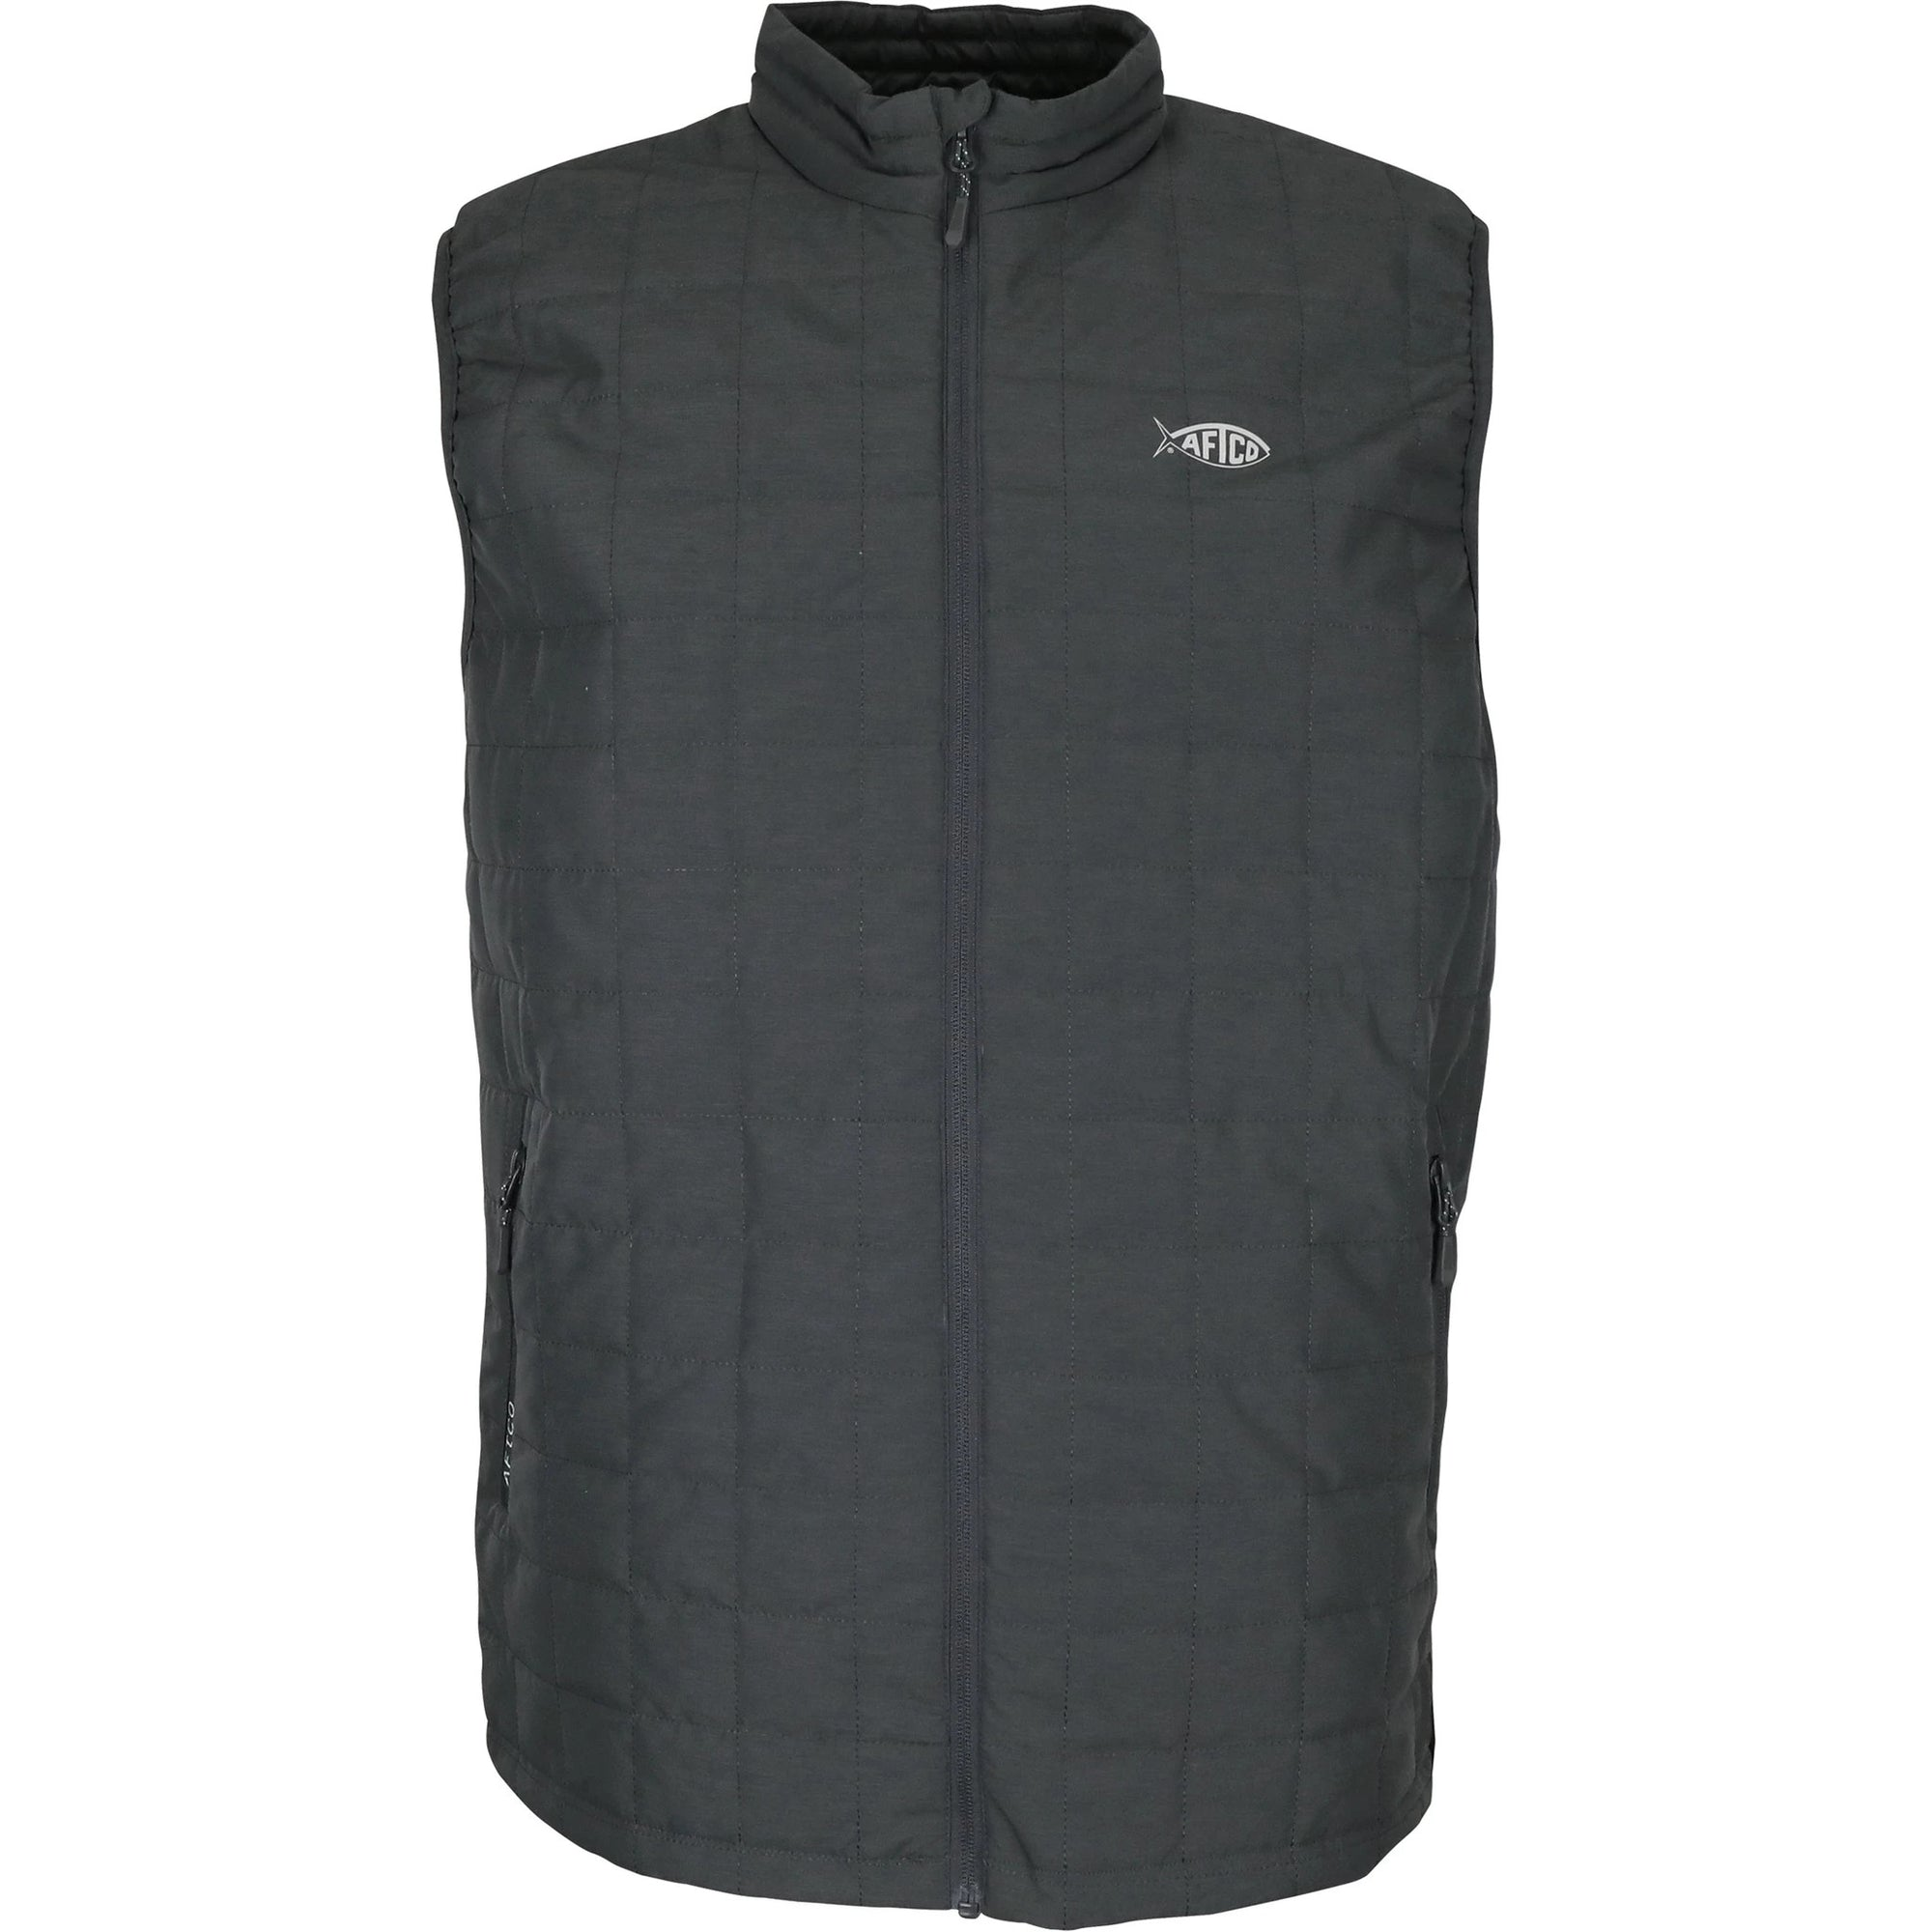 Aftco Men's Pufferfish Insulated Vest